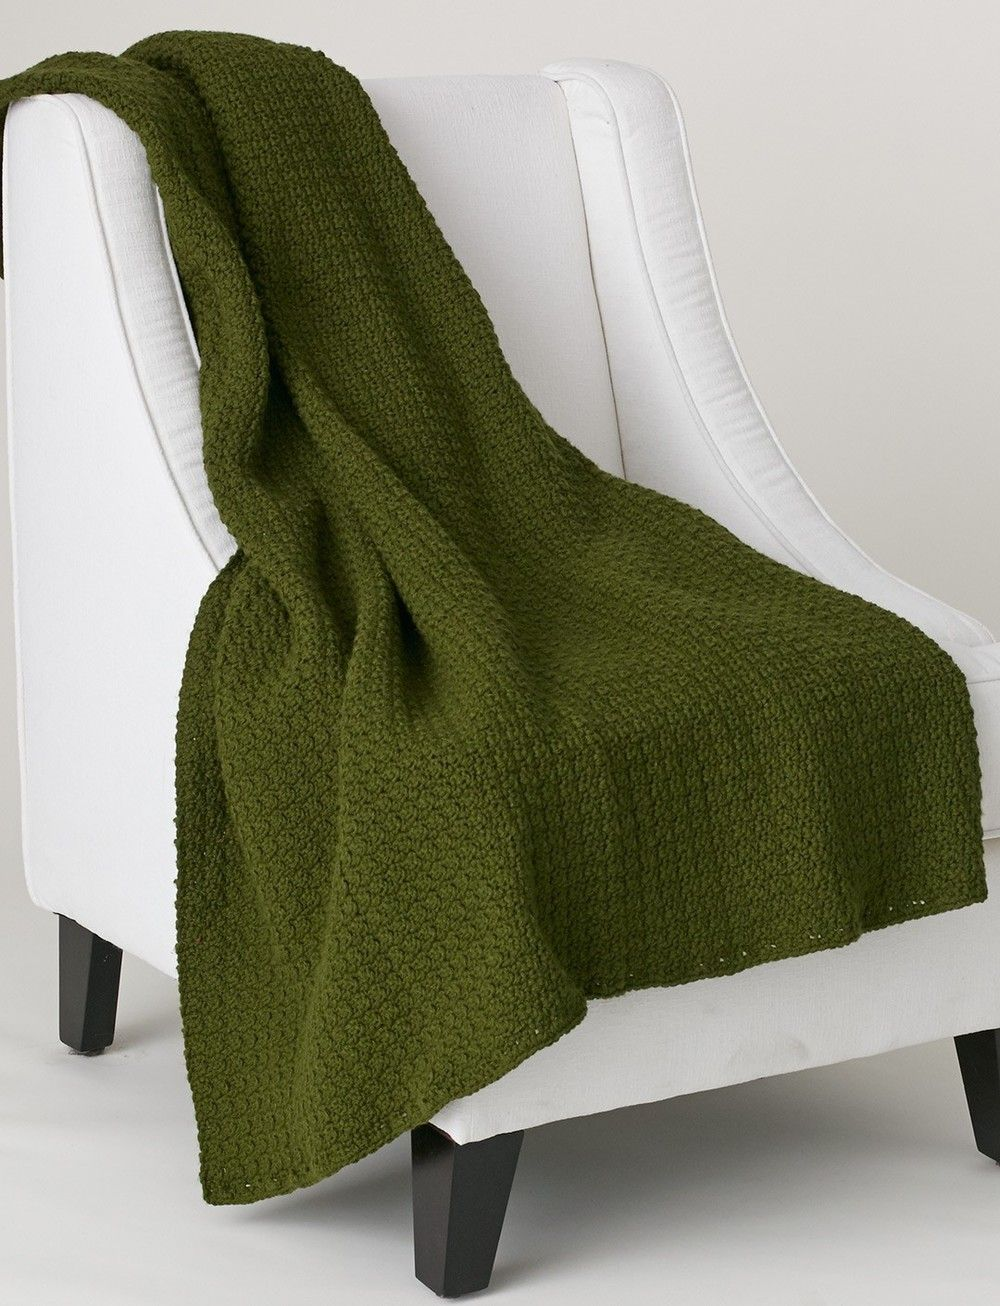 Calling all crochet beginners, we have a beautiful pattern just for you! The Evergreen Crochet Throw is perfect for any crochet beginner looking to learn how to crochet a blanket.